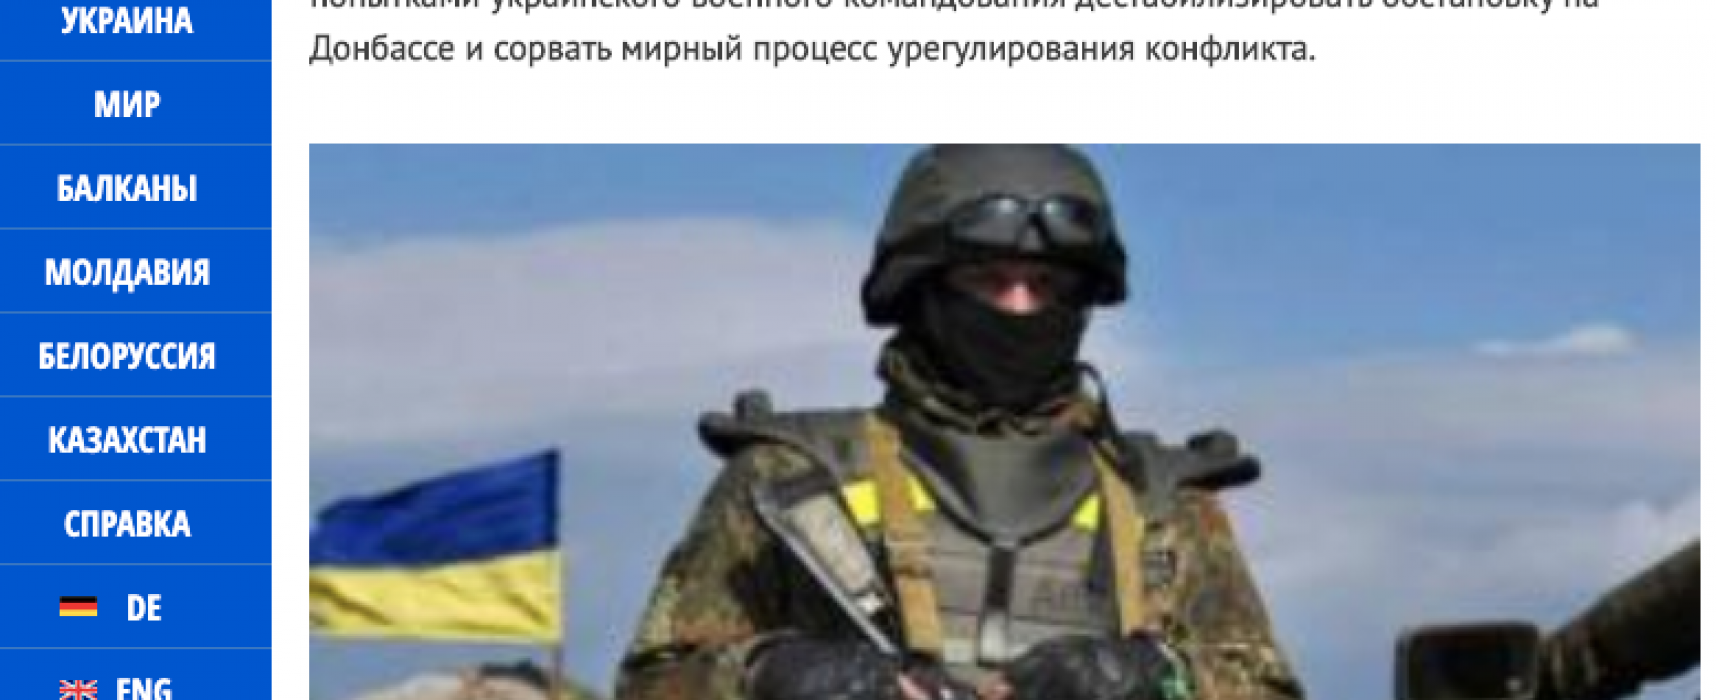 Fake: Kyiv Planning Impending Provocation on Normandy Format Paris Meeting